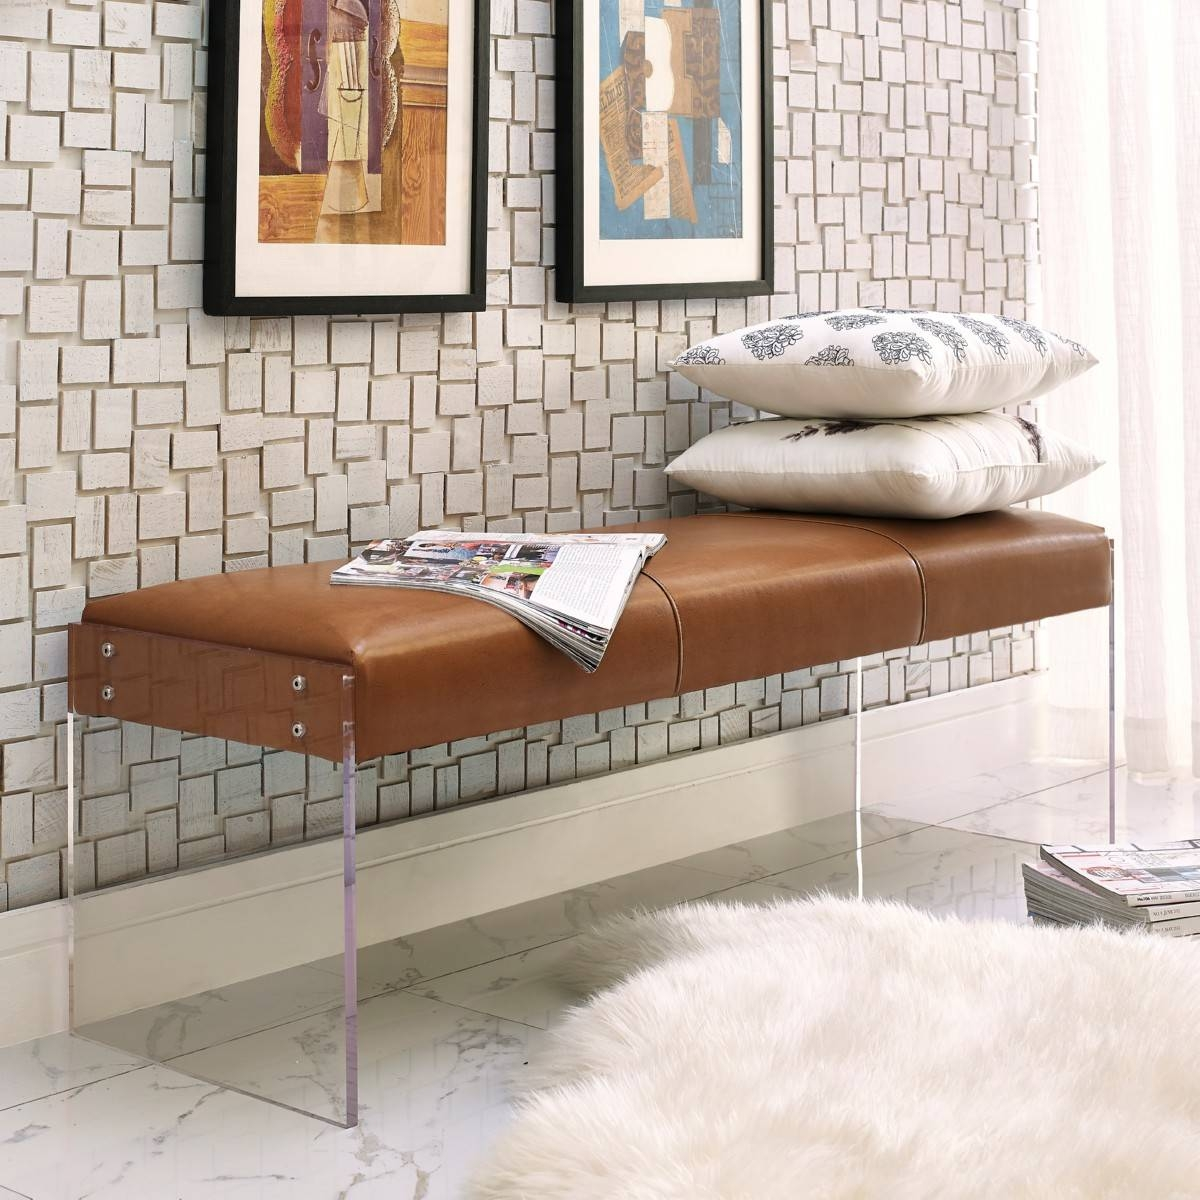 Envy Bench | Leather/acrylic, Tov Furniture - Modern Manhattan for Leather Bench Sofas (Image 8 of 30)